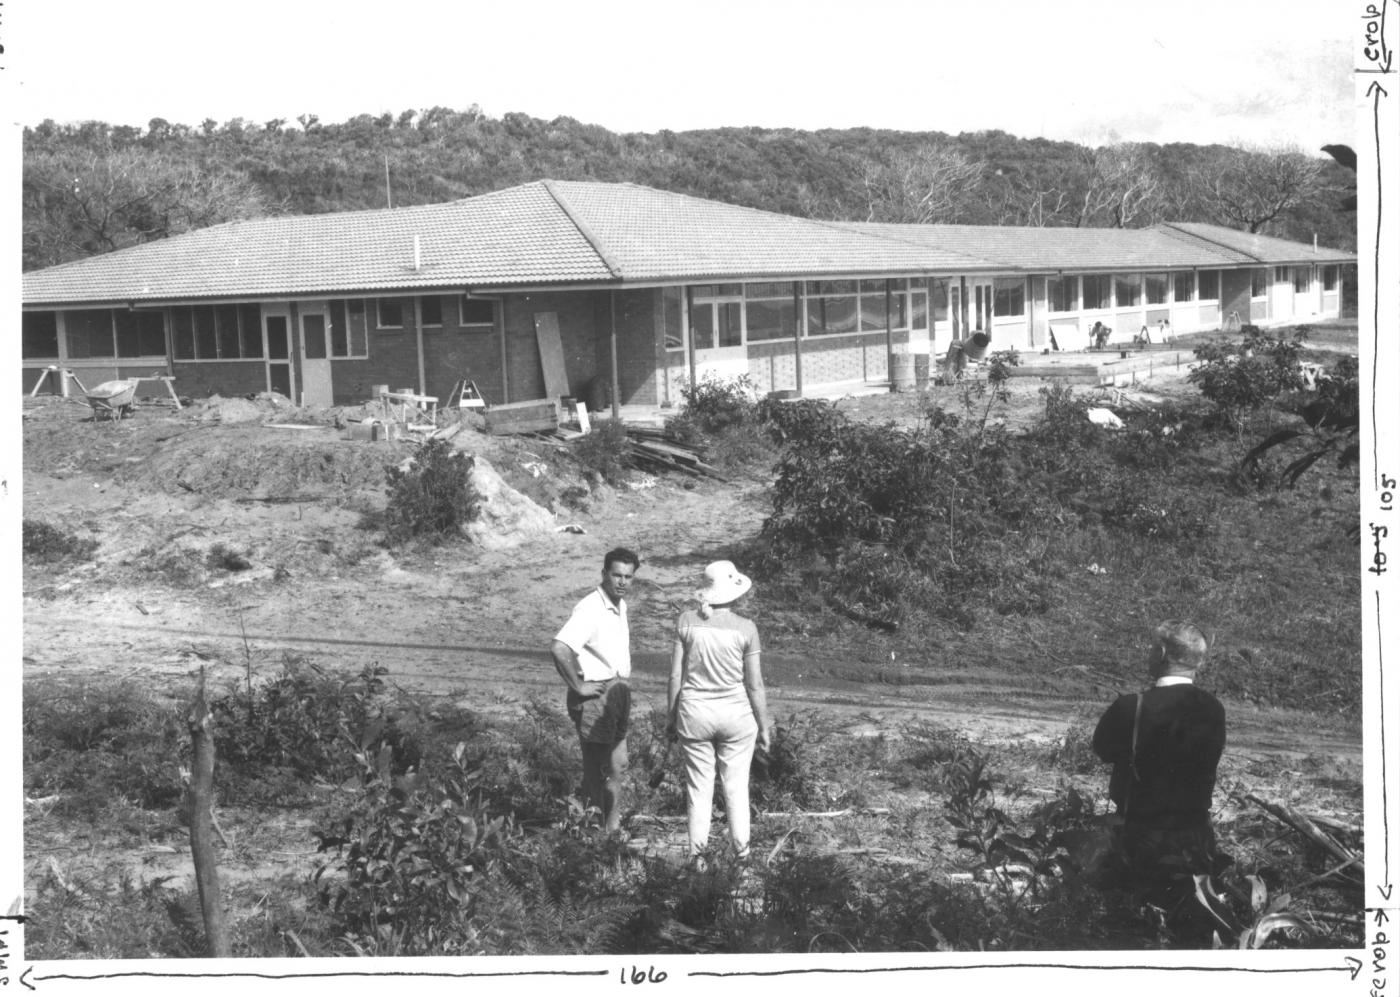 Black and white photograph of the Stradbroke Hotel